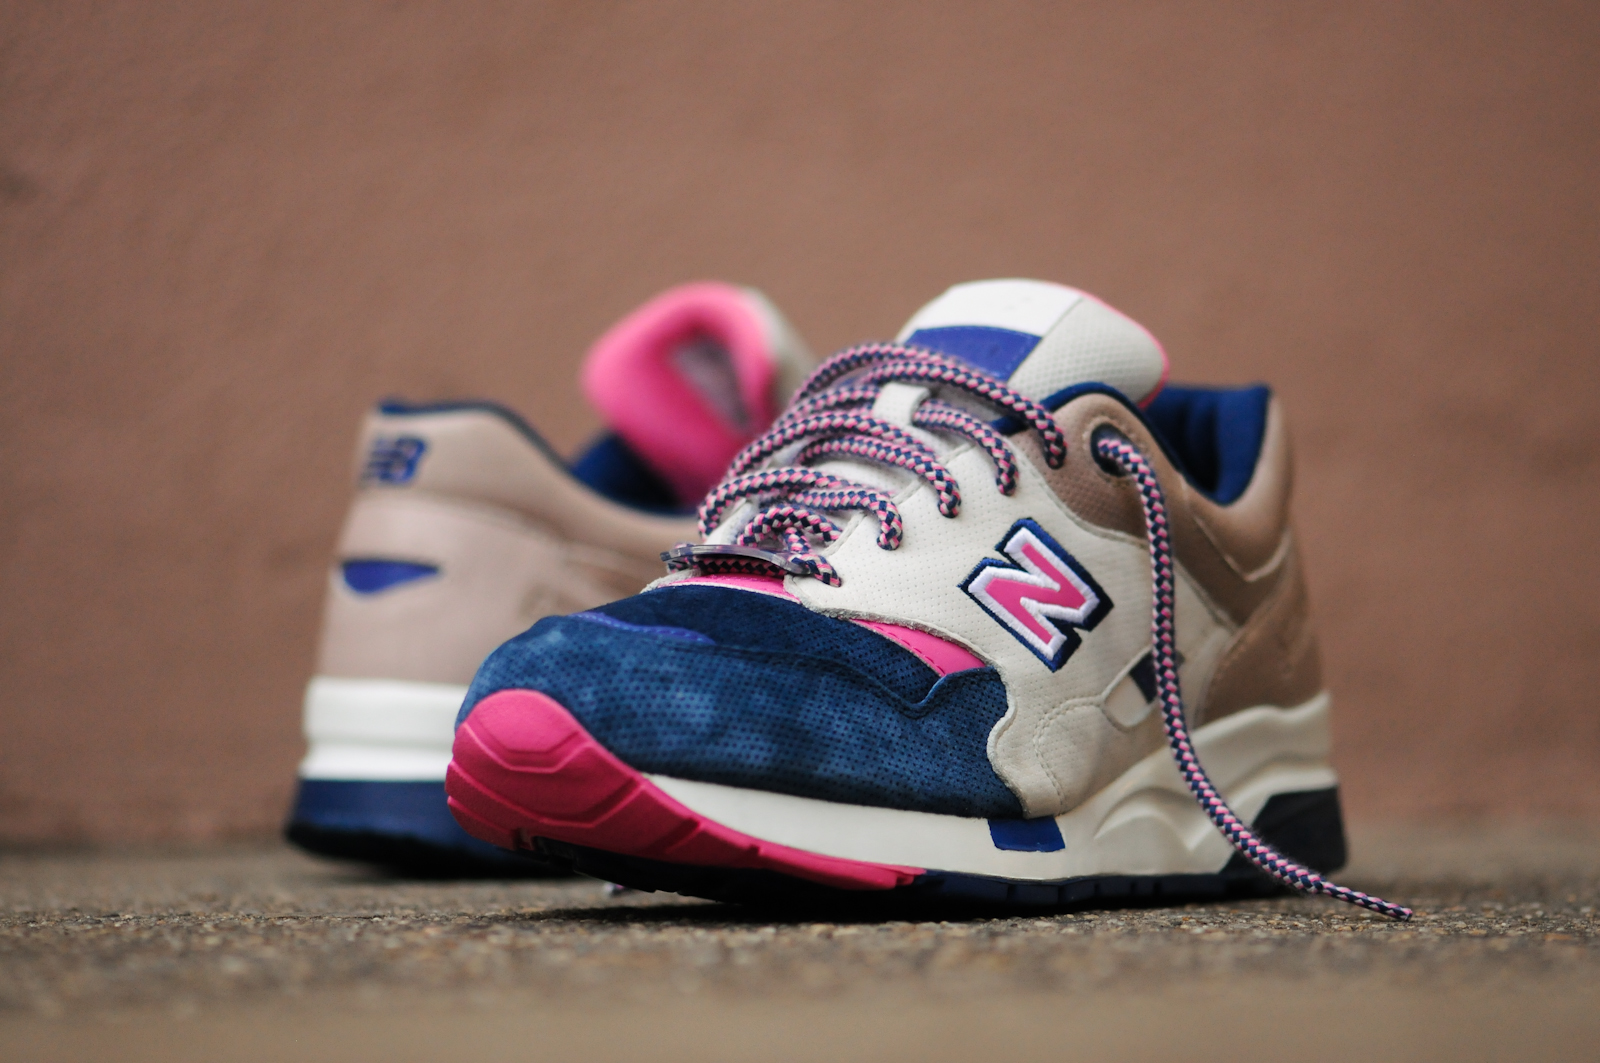 new balance x ronnie fieg